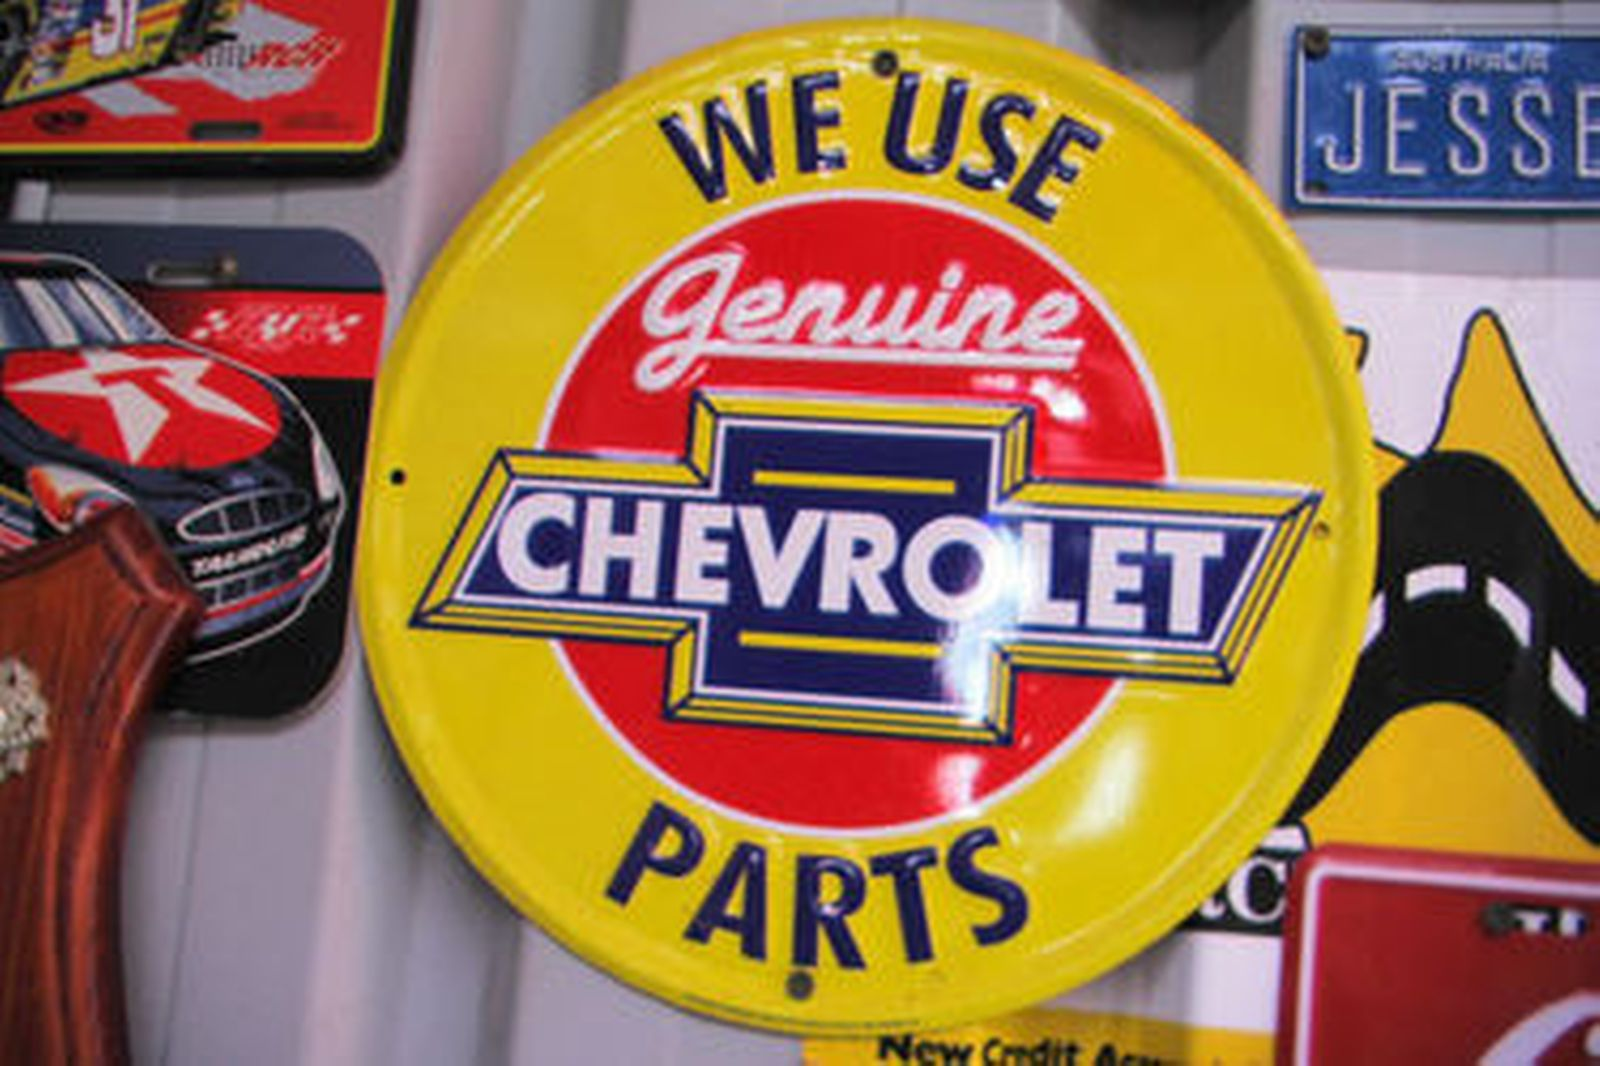 6 x Reproduction Metal Signs (Discs)